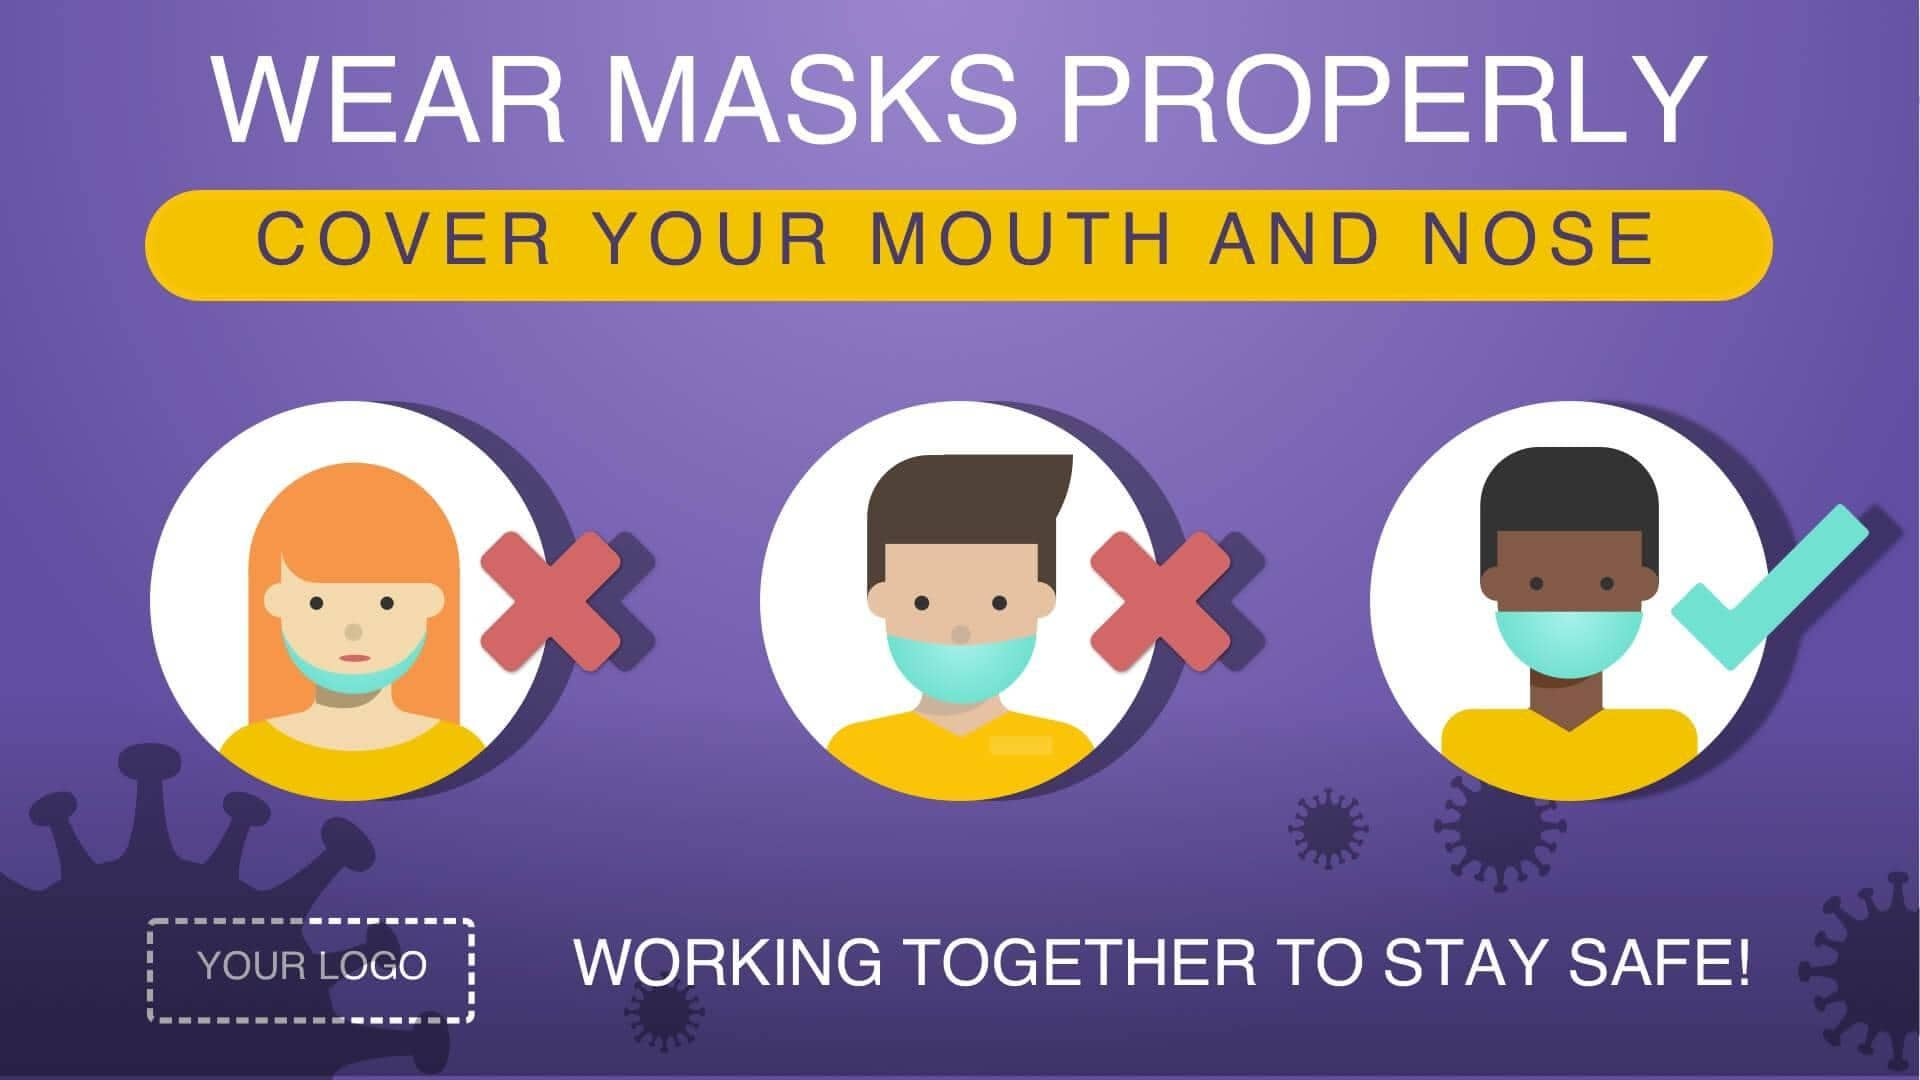 Digital signage showing a message on how to wear masks properly.